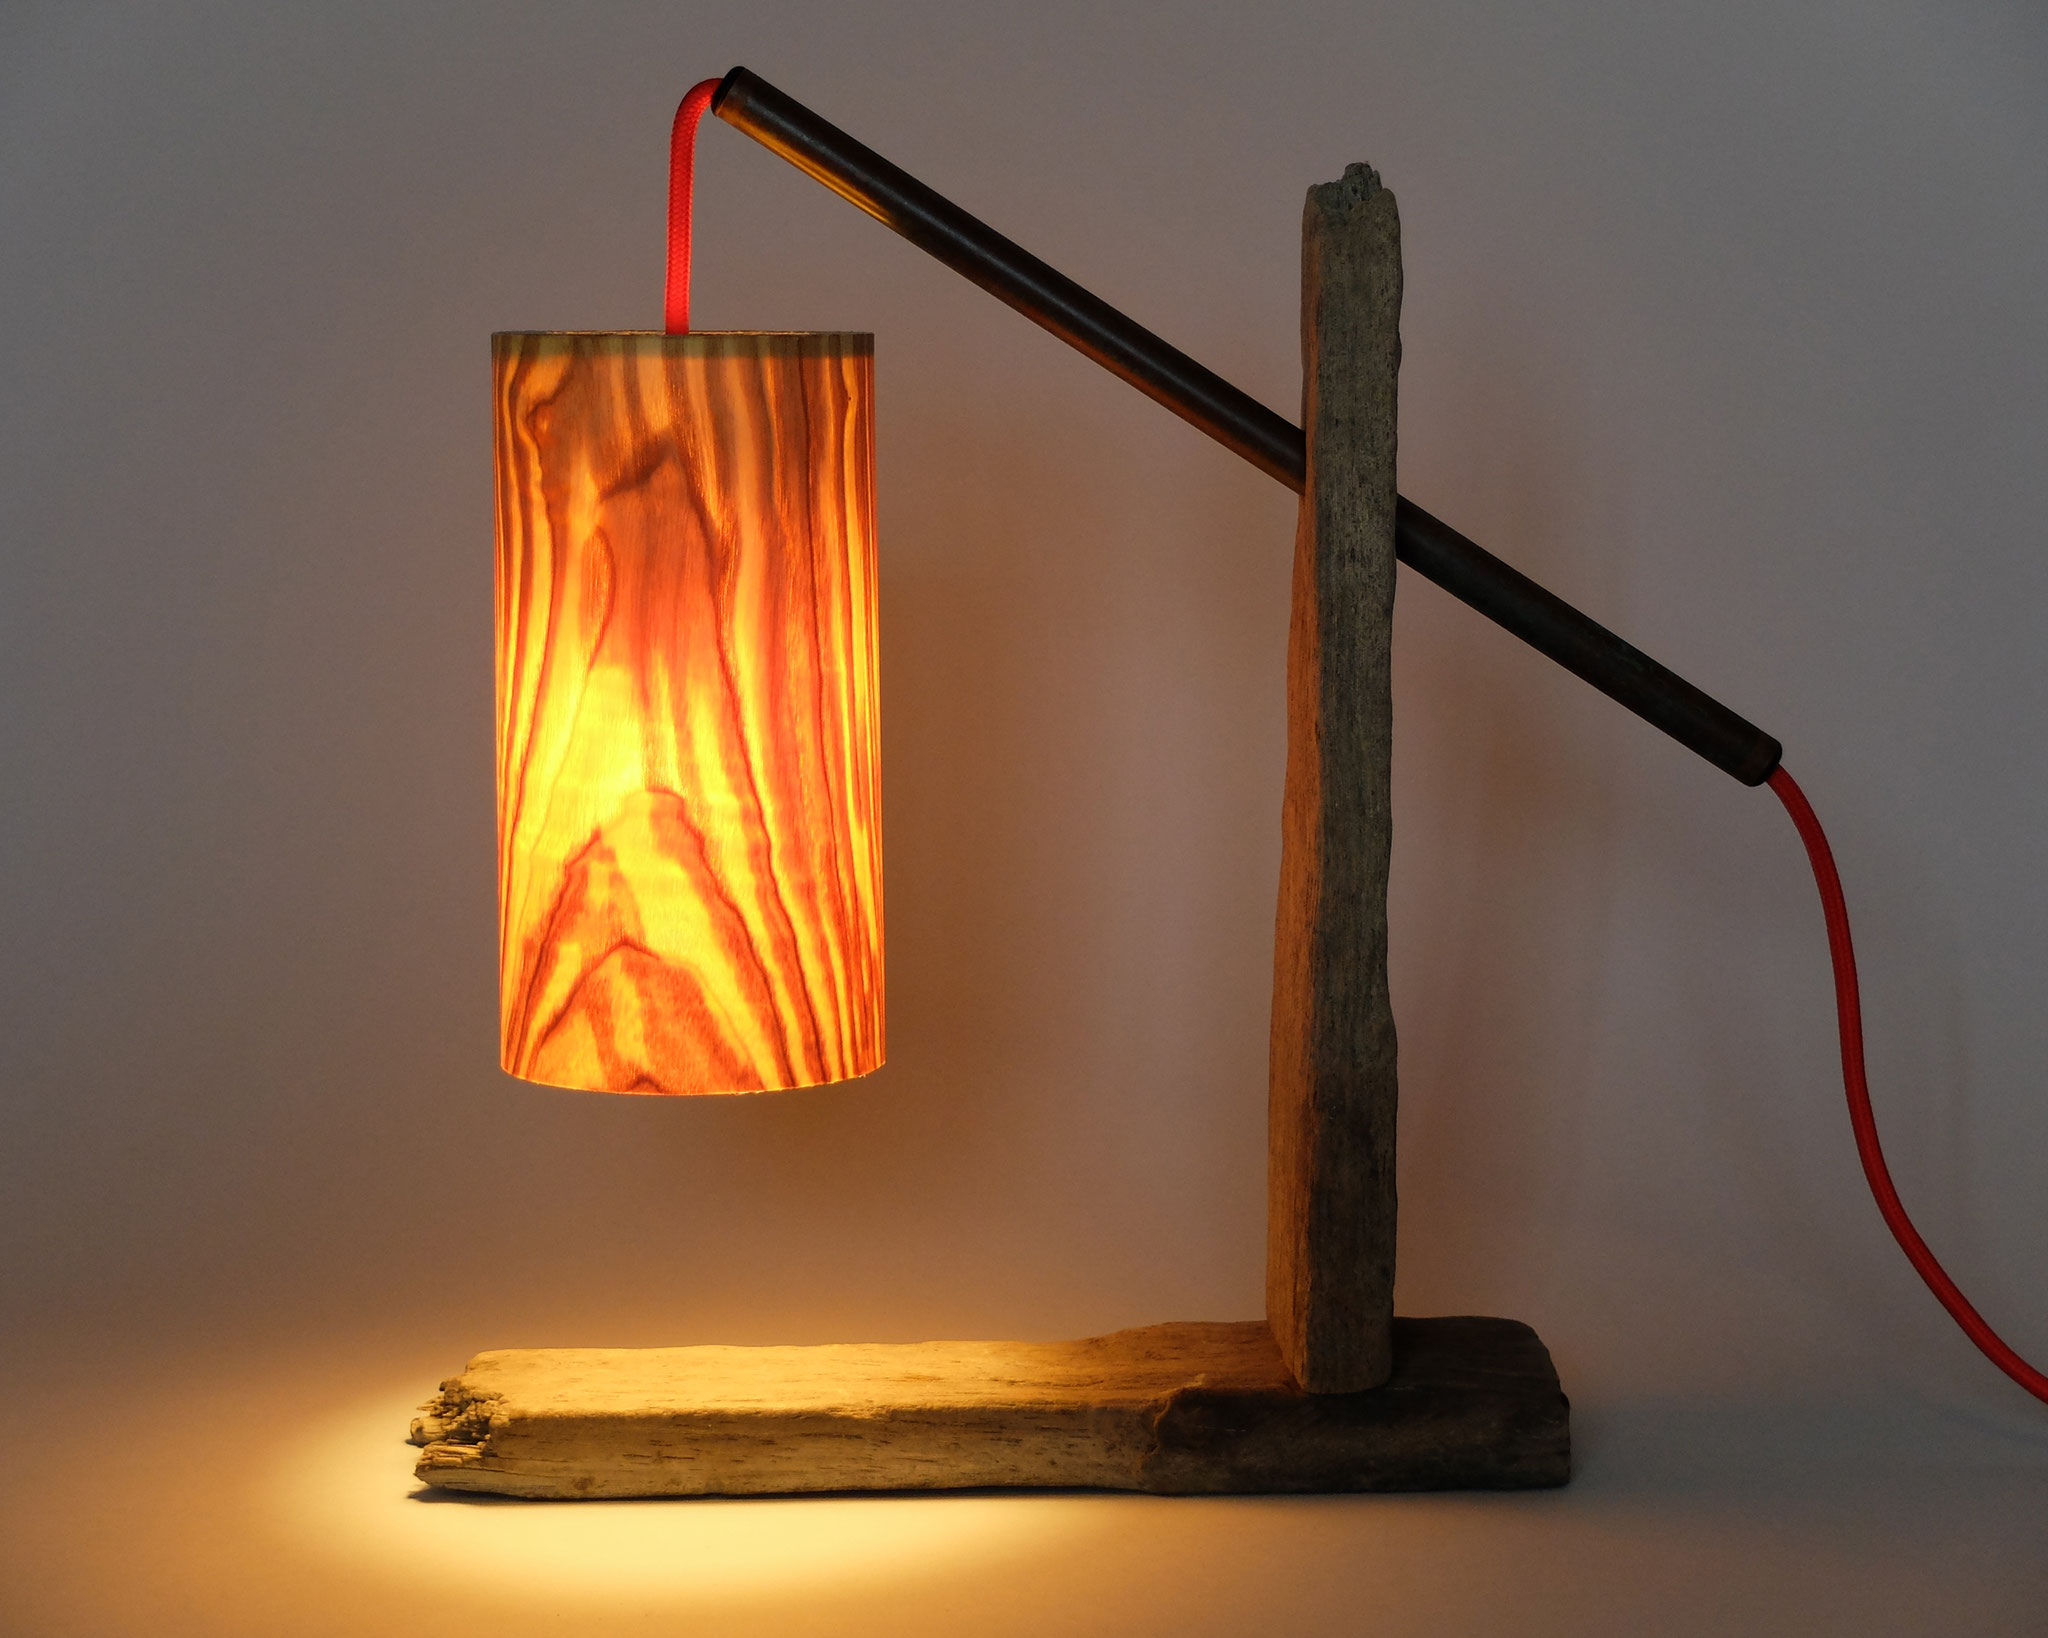 Upcycling Tischlampe Lucius